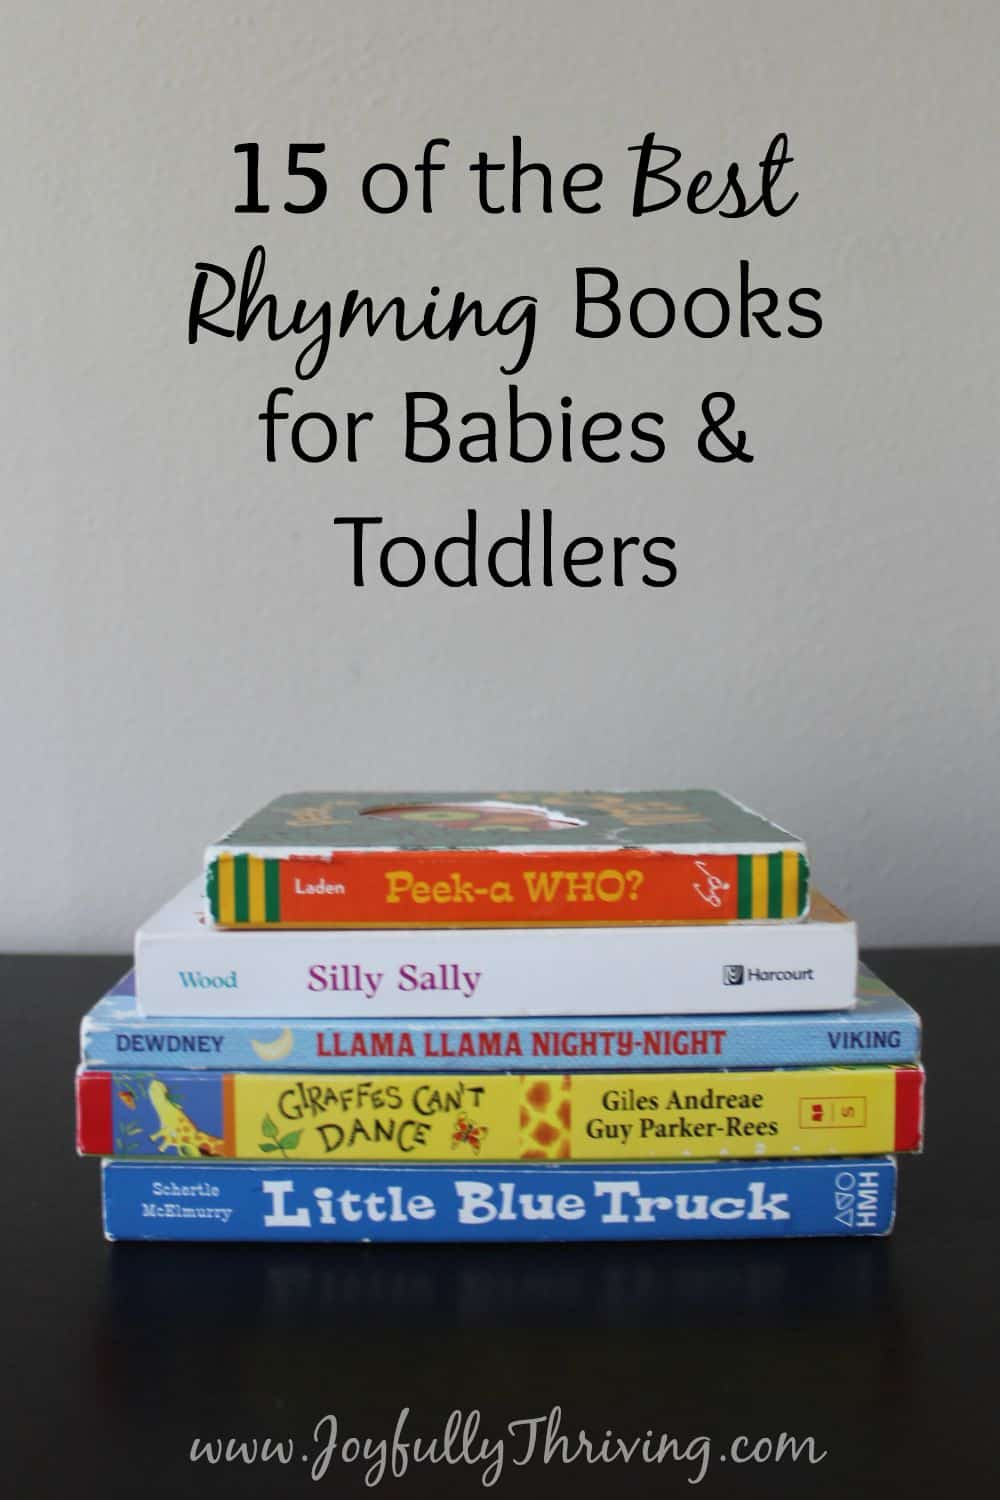 Showy Rhyming Books 15 Your Little One Check Out This List By A Preschool Teacher Some Rhyming Books Mom Babies Toddlers If Youre Looking baby Best Books For Babies